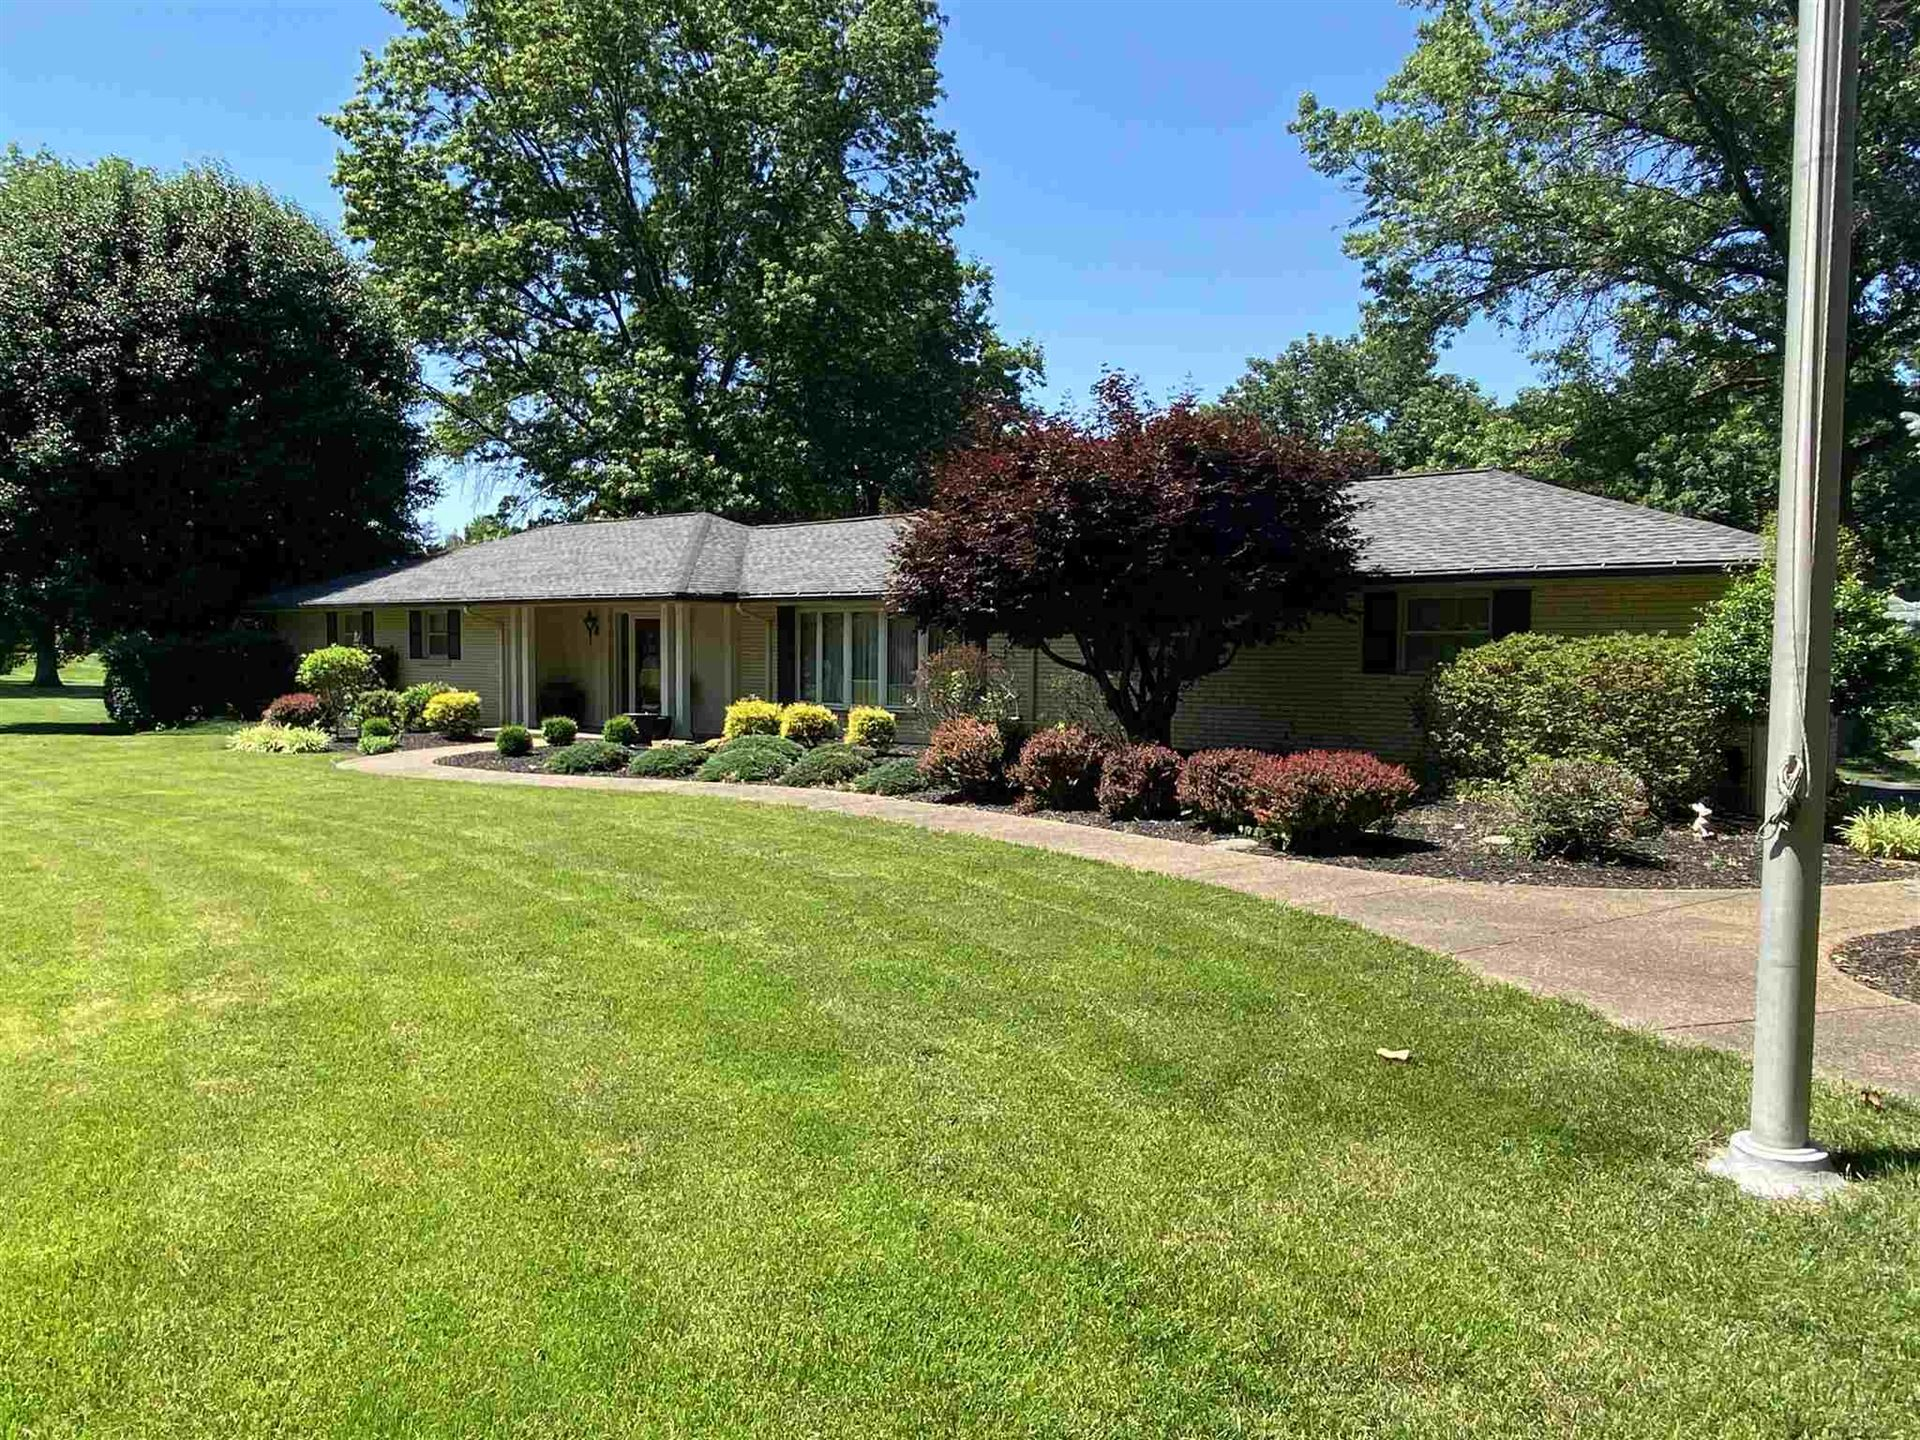 Photo of 1308 E Boonville New Harmony Road, Evansville, IN 47725 (MLS # 202011412)